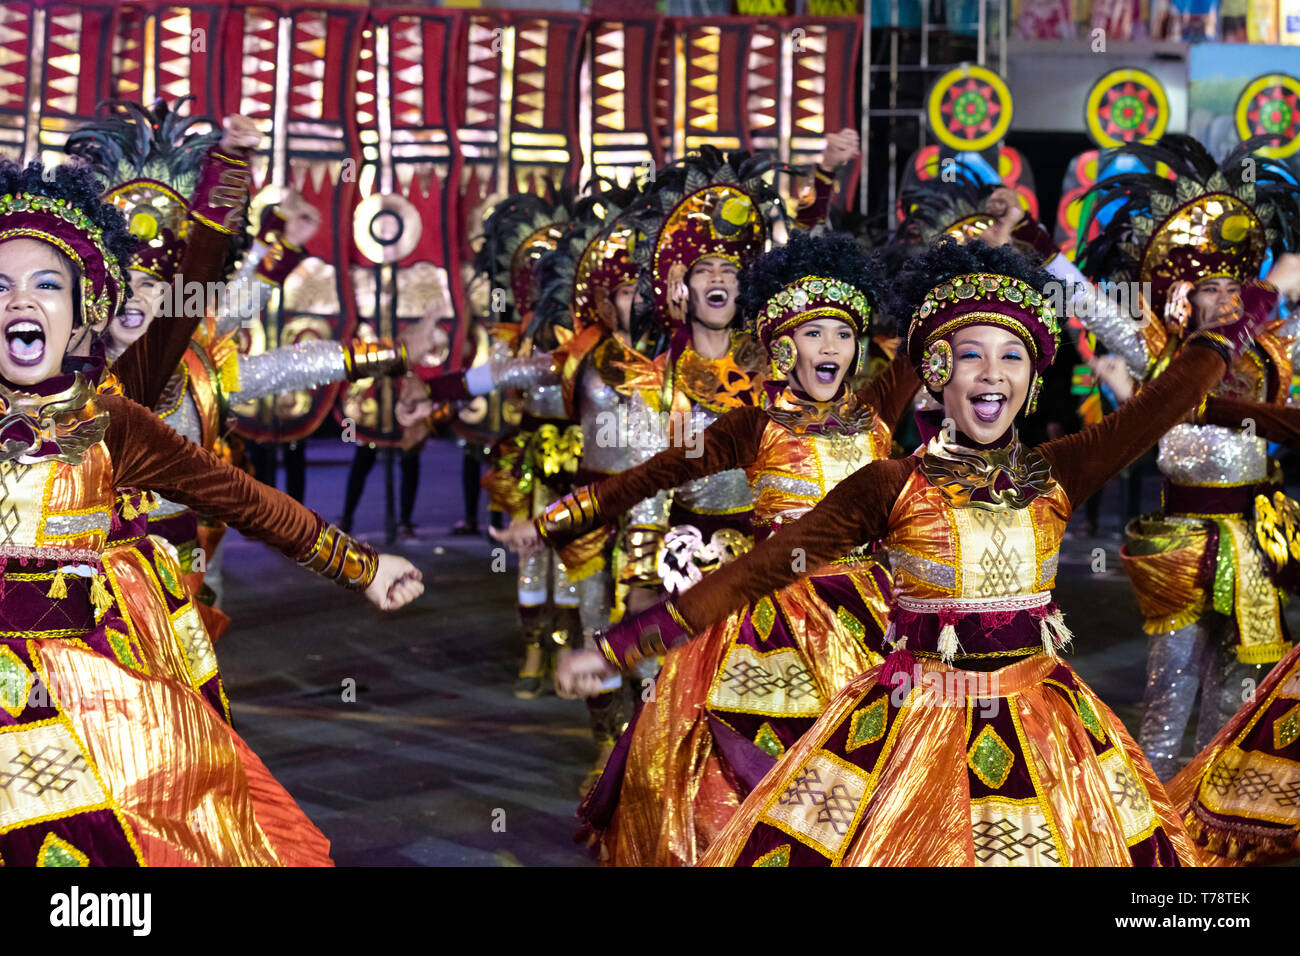 Street Dance Festival In Philippines Brightly Colored Costumes And Many Dancers Compete For Prizes Stock Photo Alamy